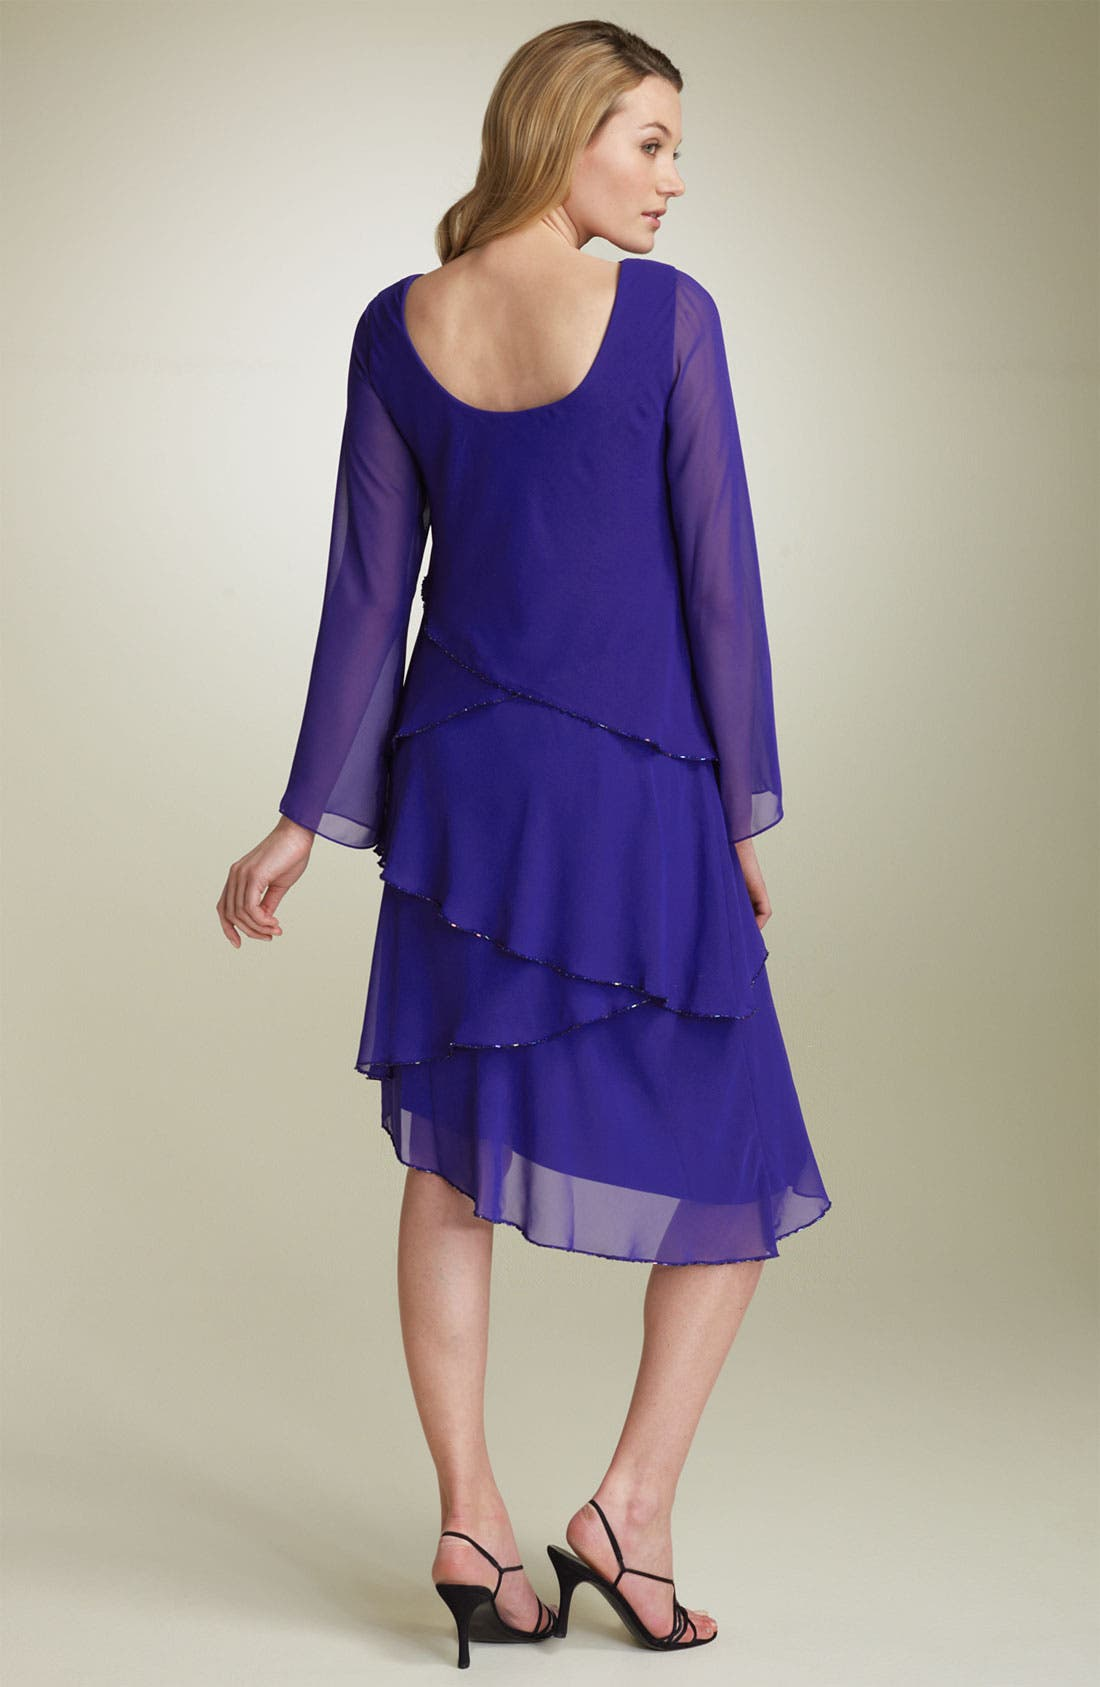 Tiered Chiffon Dress,                             Alternate thumbnail 2, color,                             428